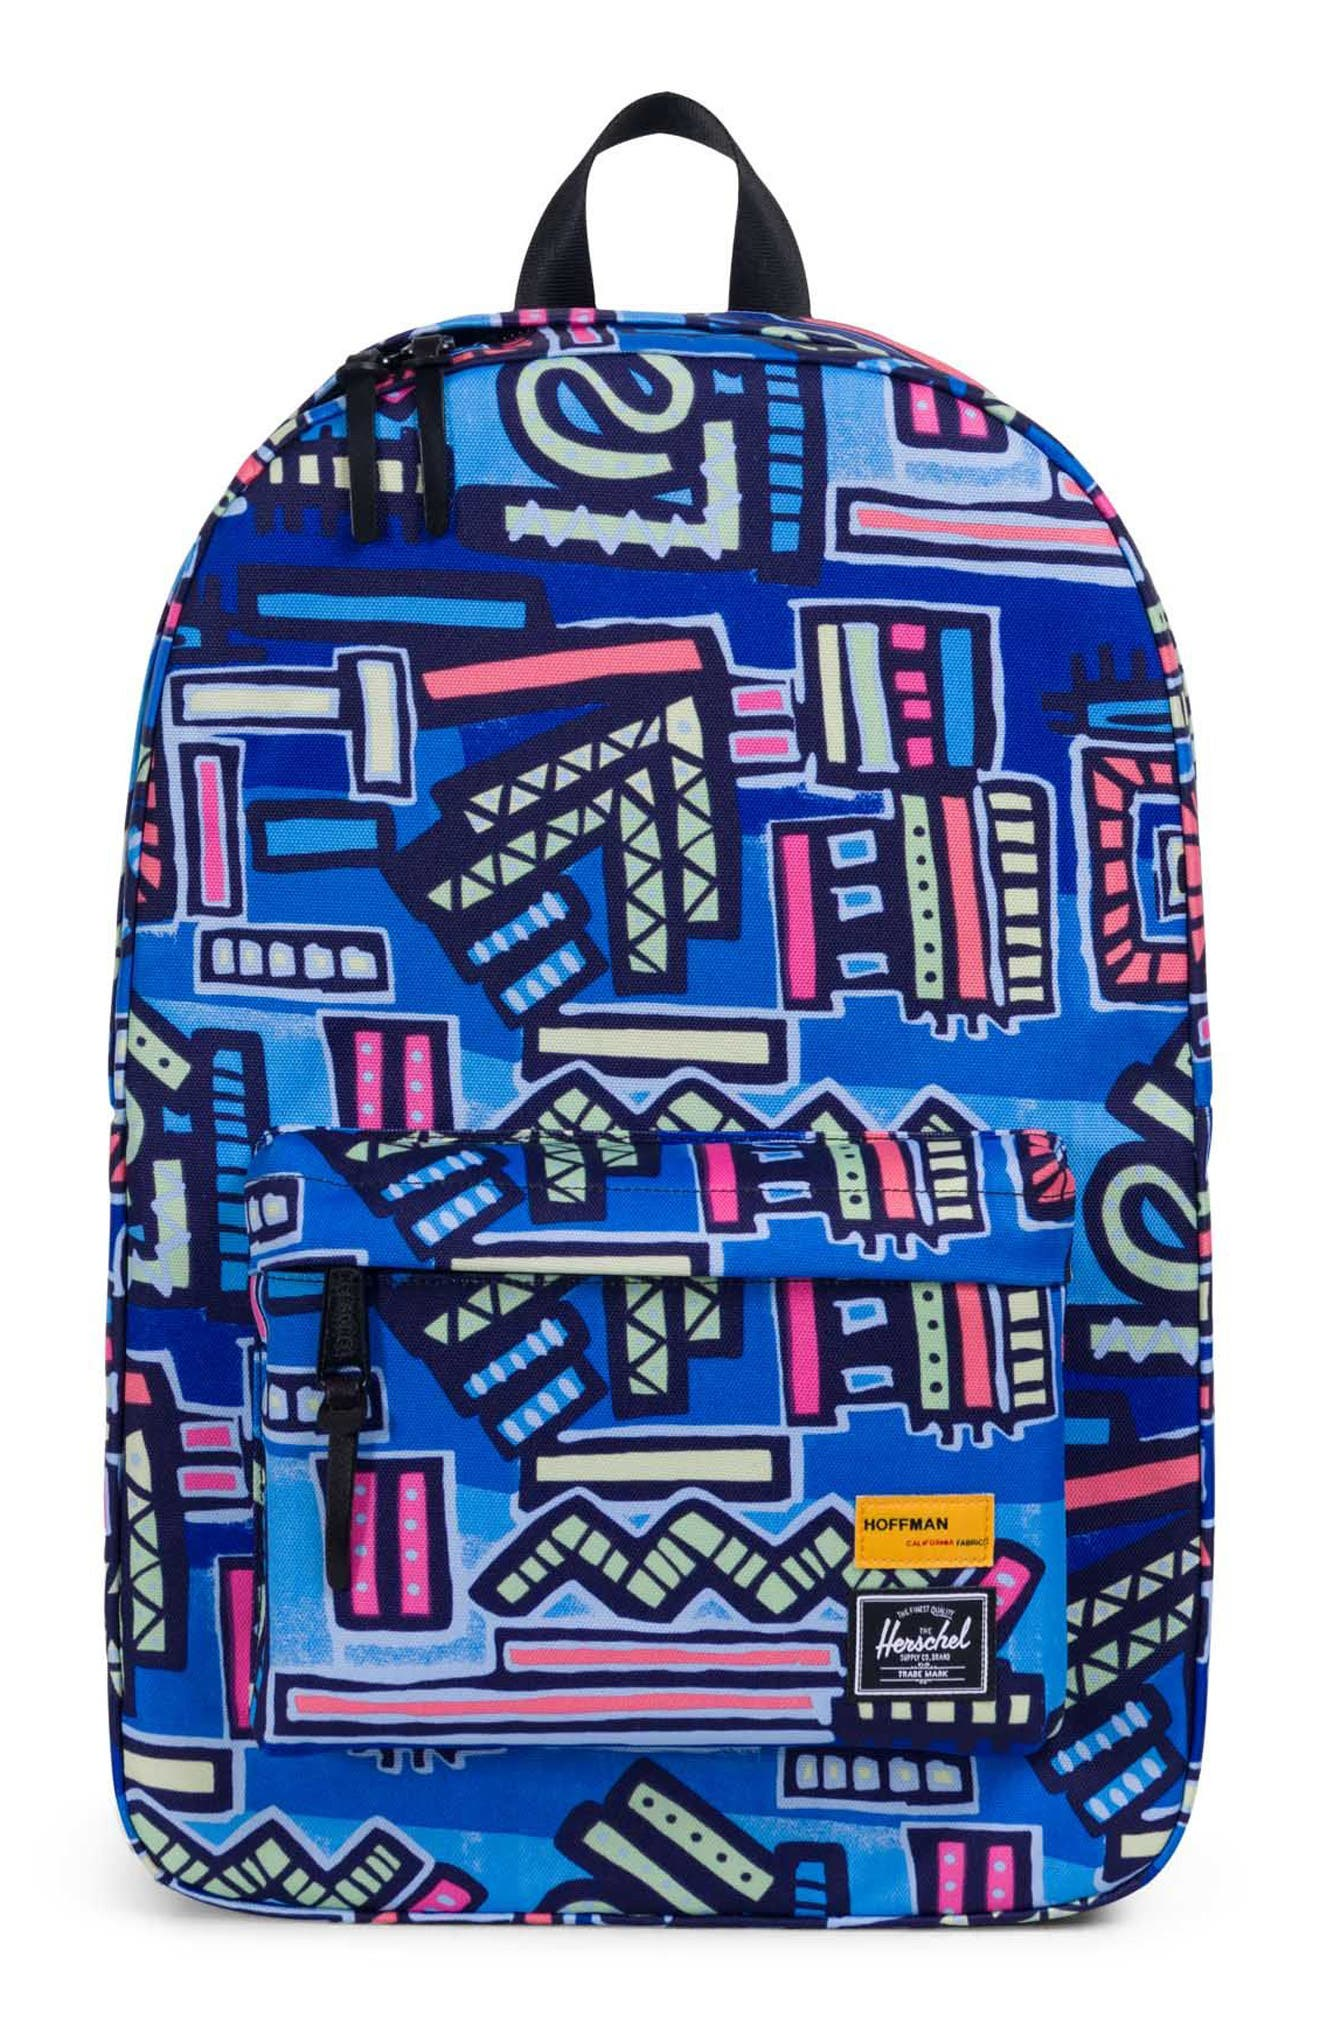 Winlaw - Hoffman Backpack,                             Main thumbnail 1, color,                             Abstract Geo Blue